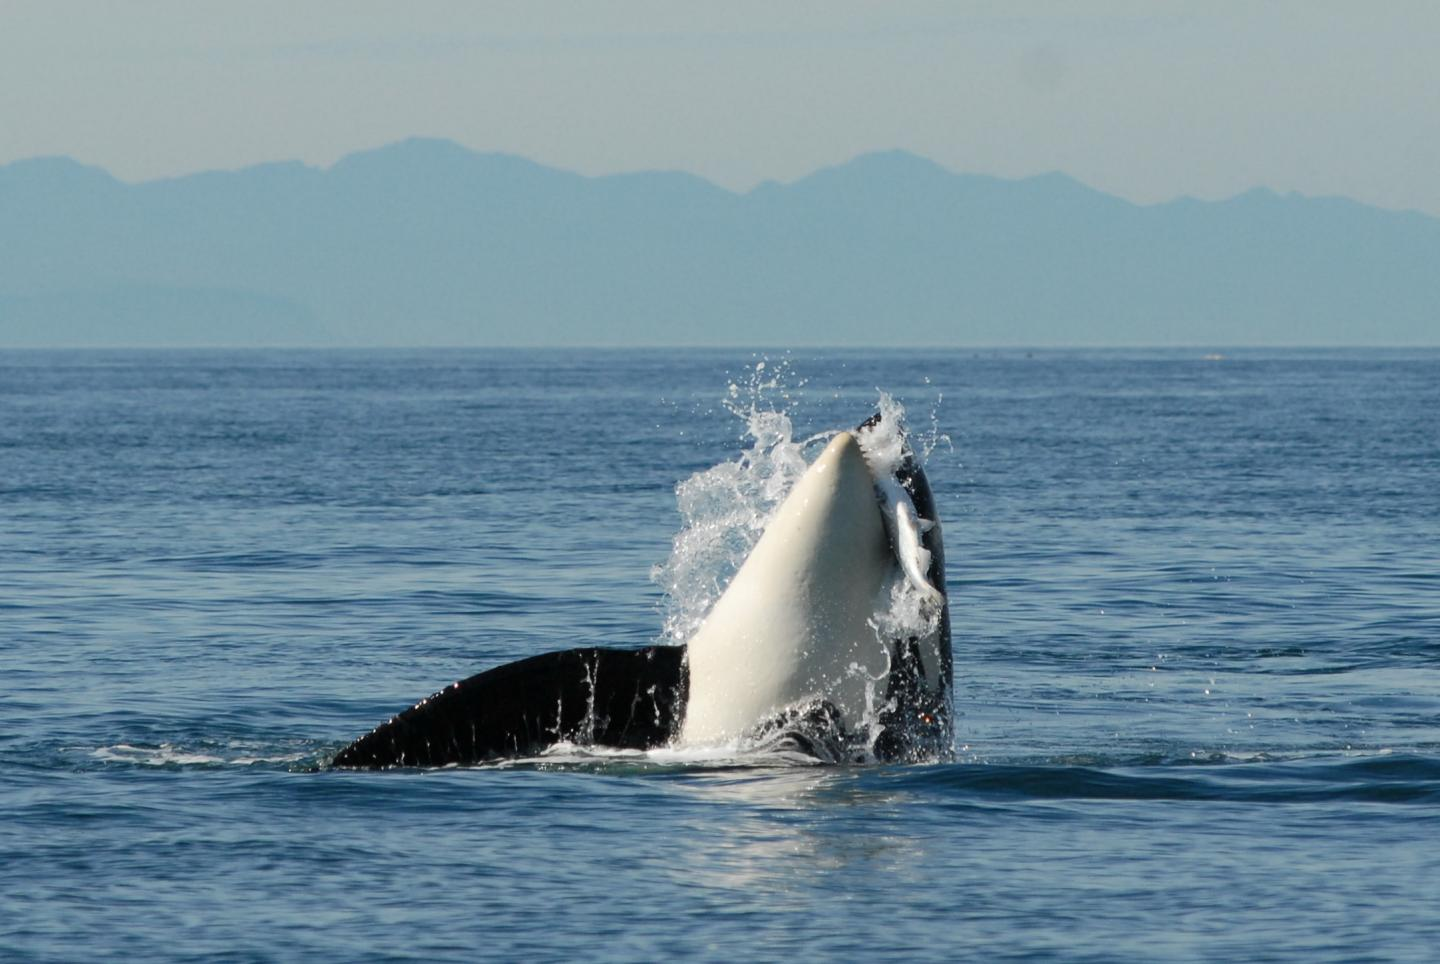 Orca feeding in Puget Sound